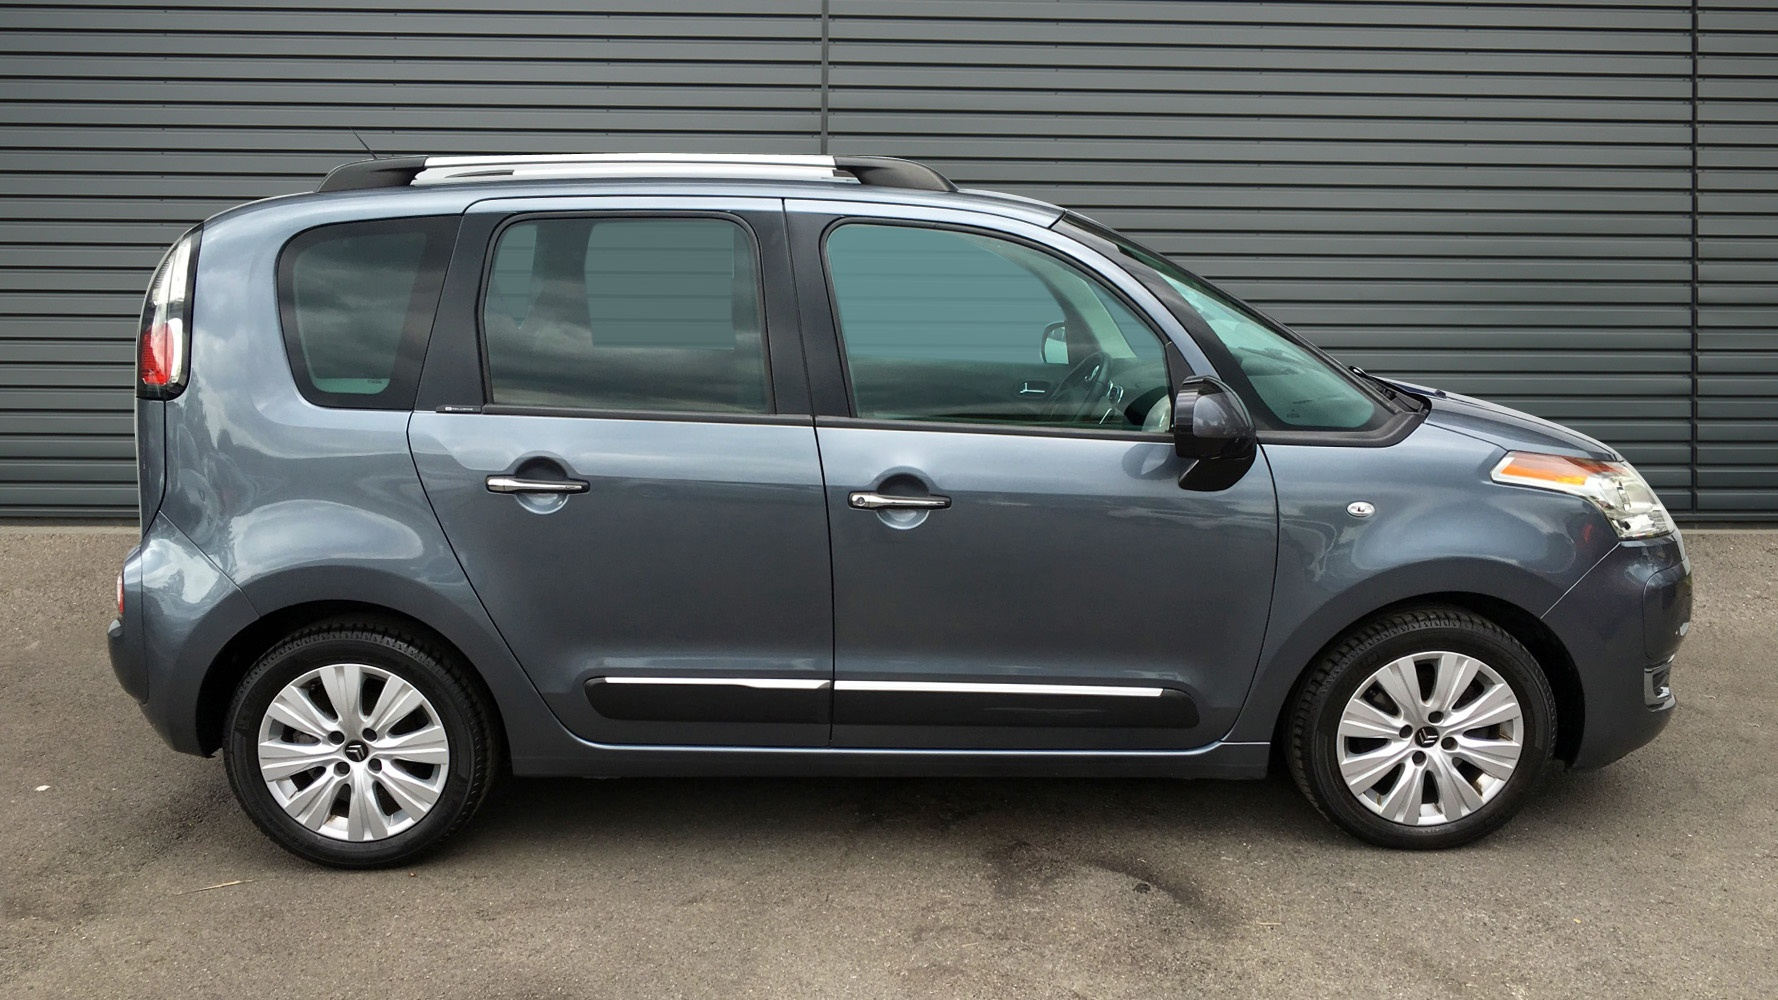 used citroen c3 picasso mpv 1 6 vti exclusive egs6 5dr 2012 re61aco. Black Bedroom Furniture Sets. Home Design Ideas